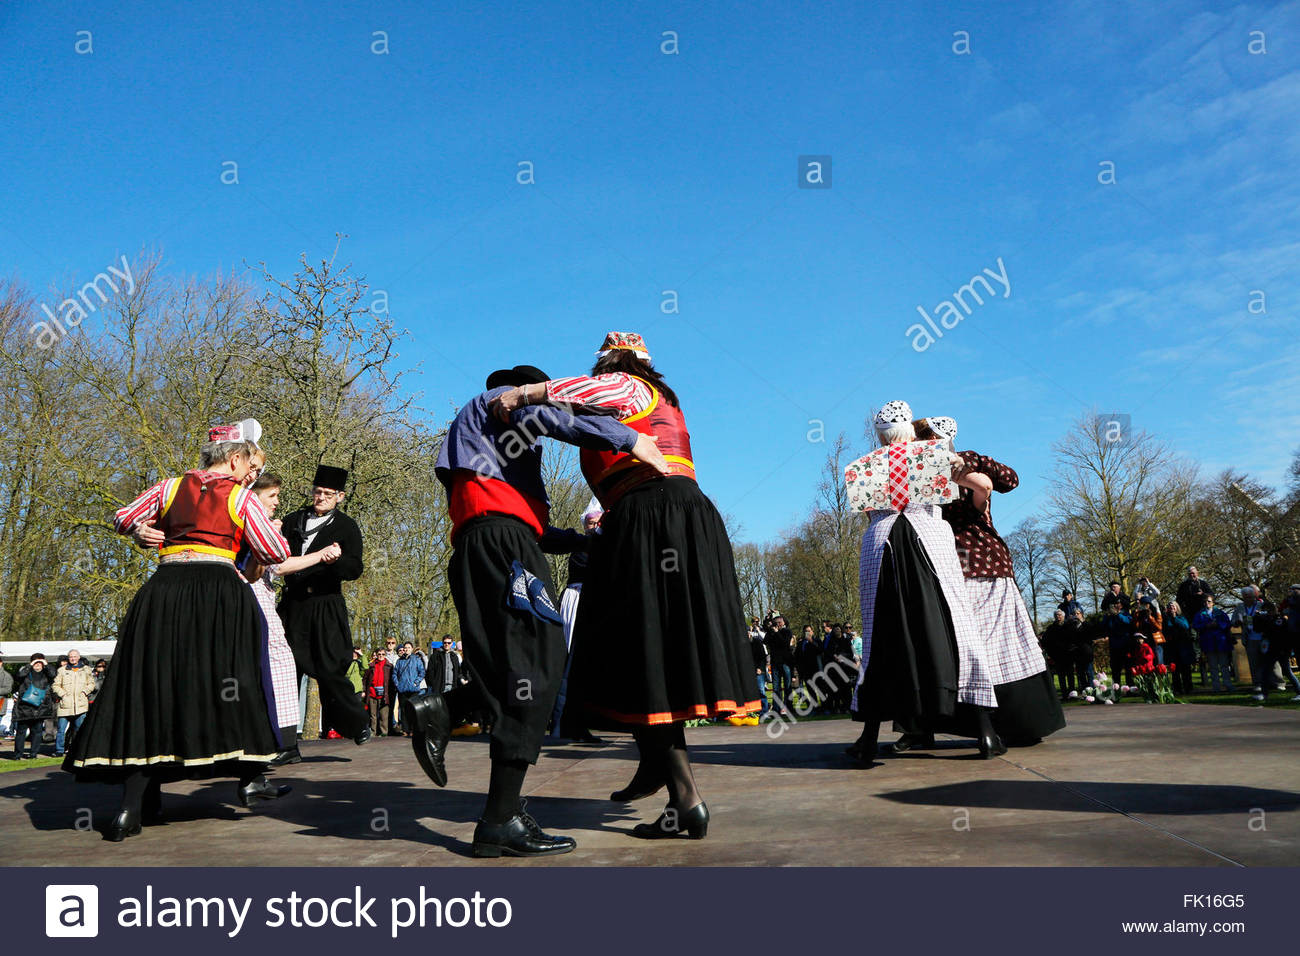 Elderly people in traditional Dutch costumes are dancing in